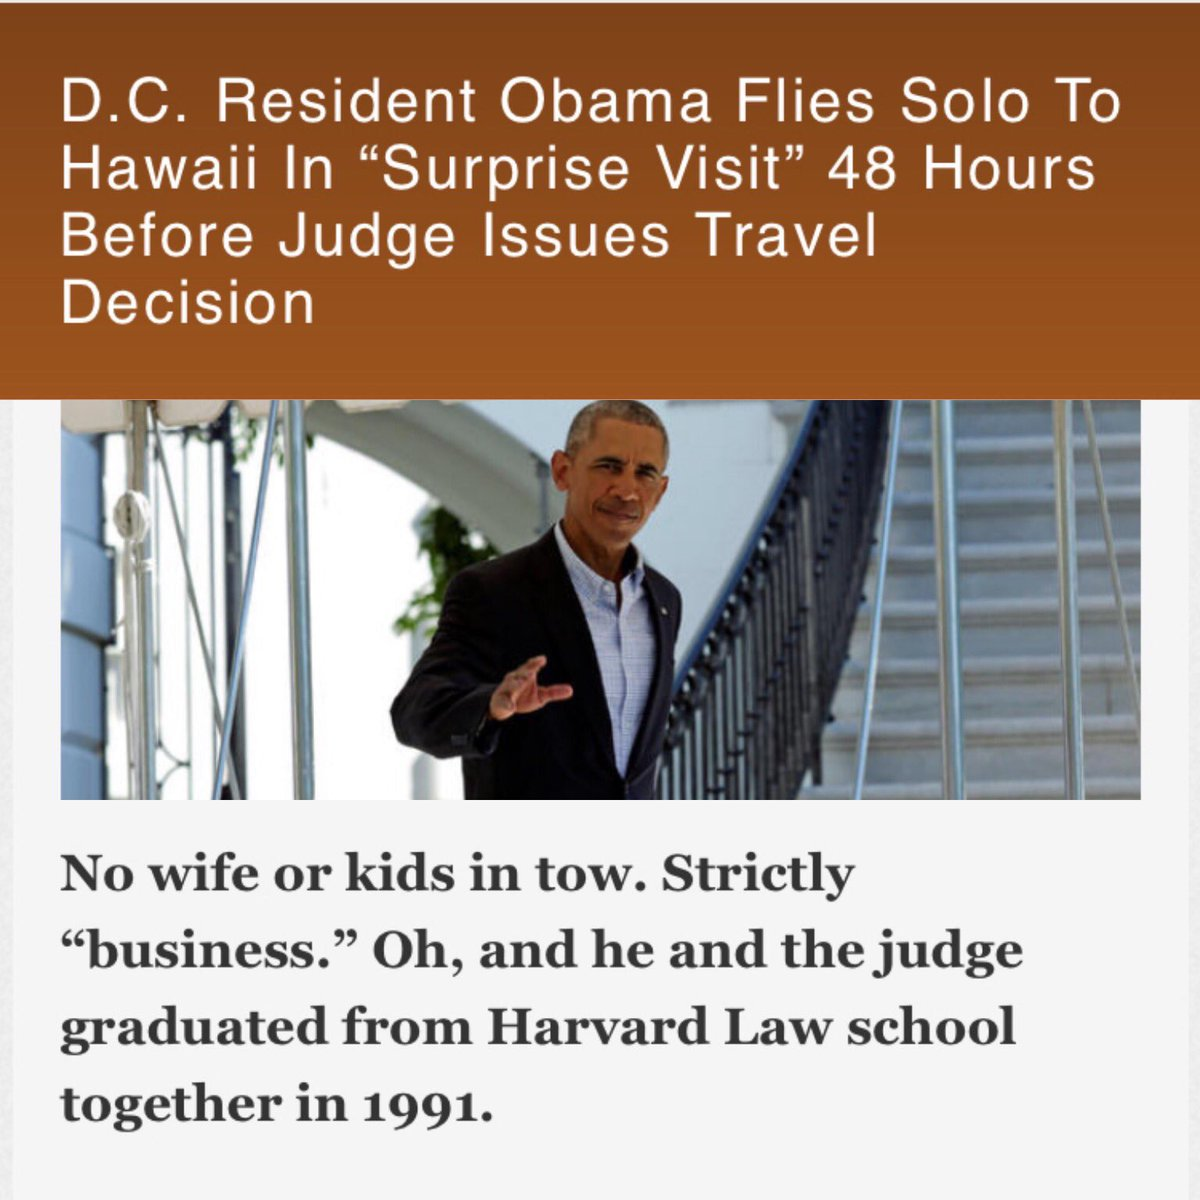 Obama Also Did A Travel Ban